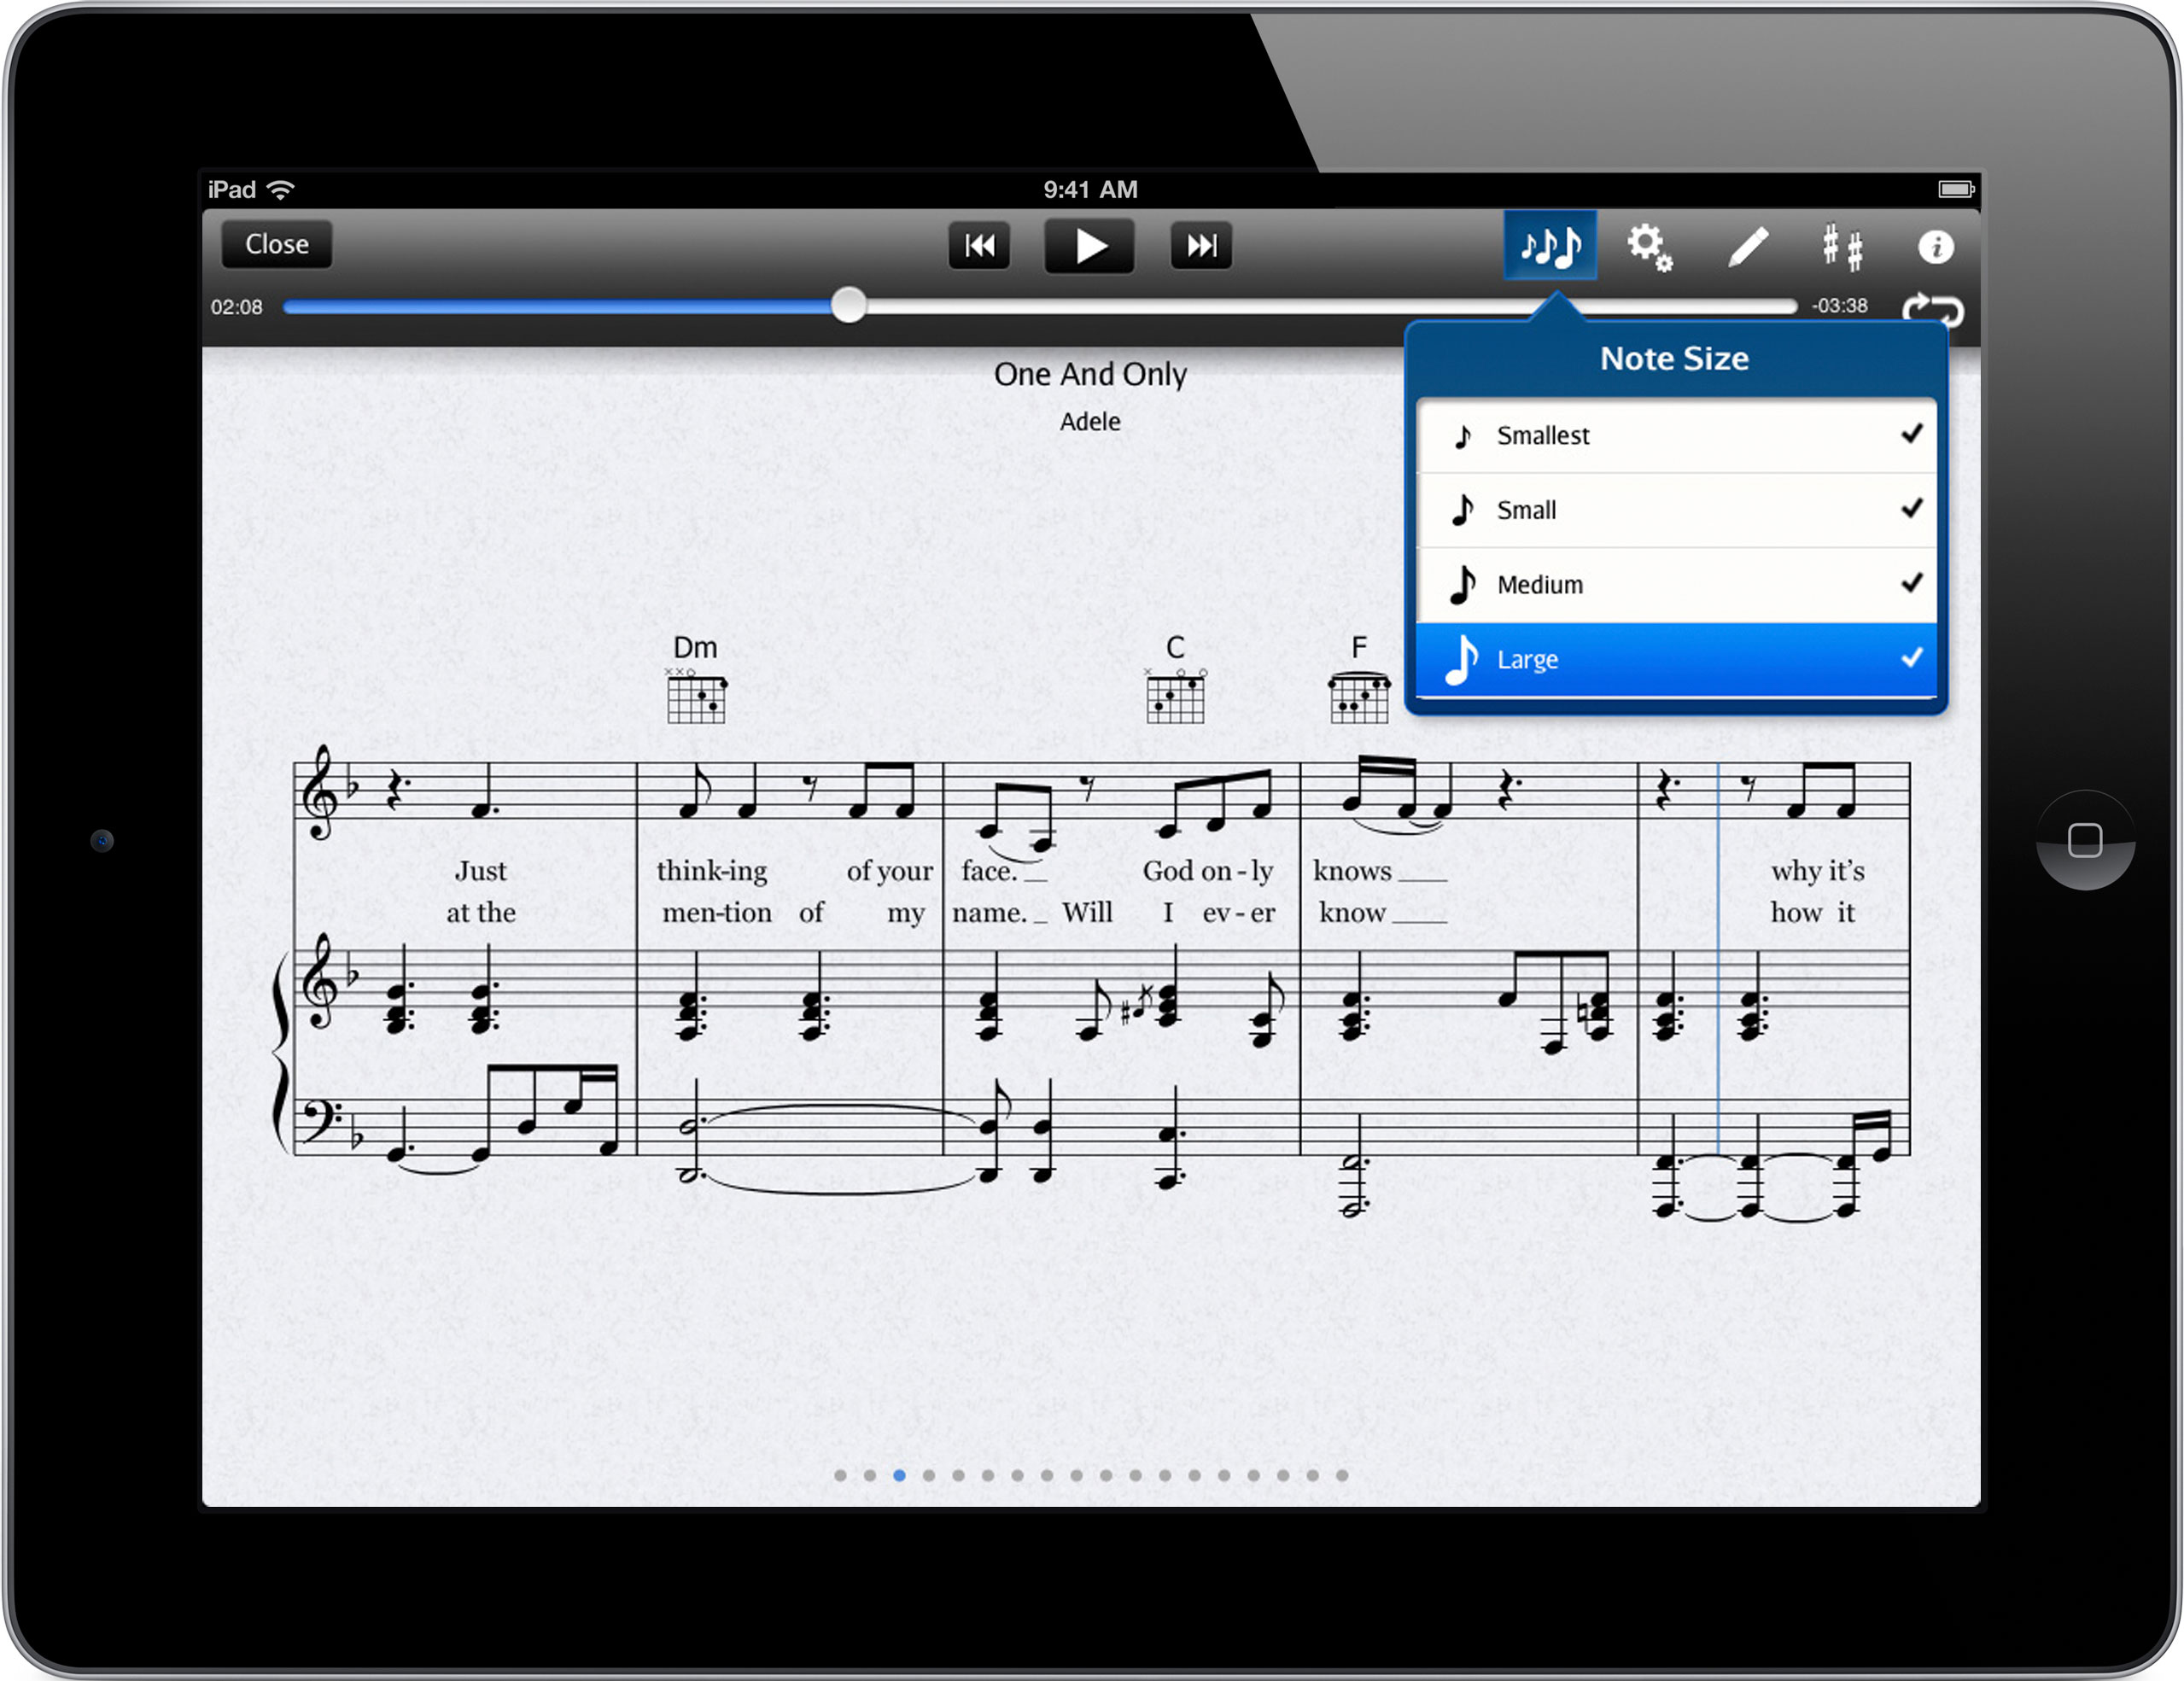 Several note size options with automatic sheet music resizing